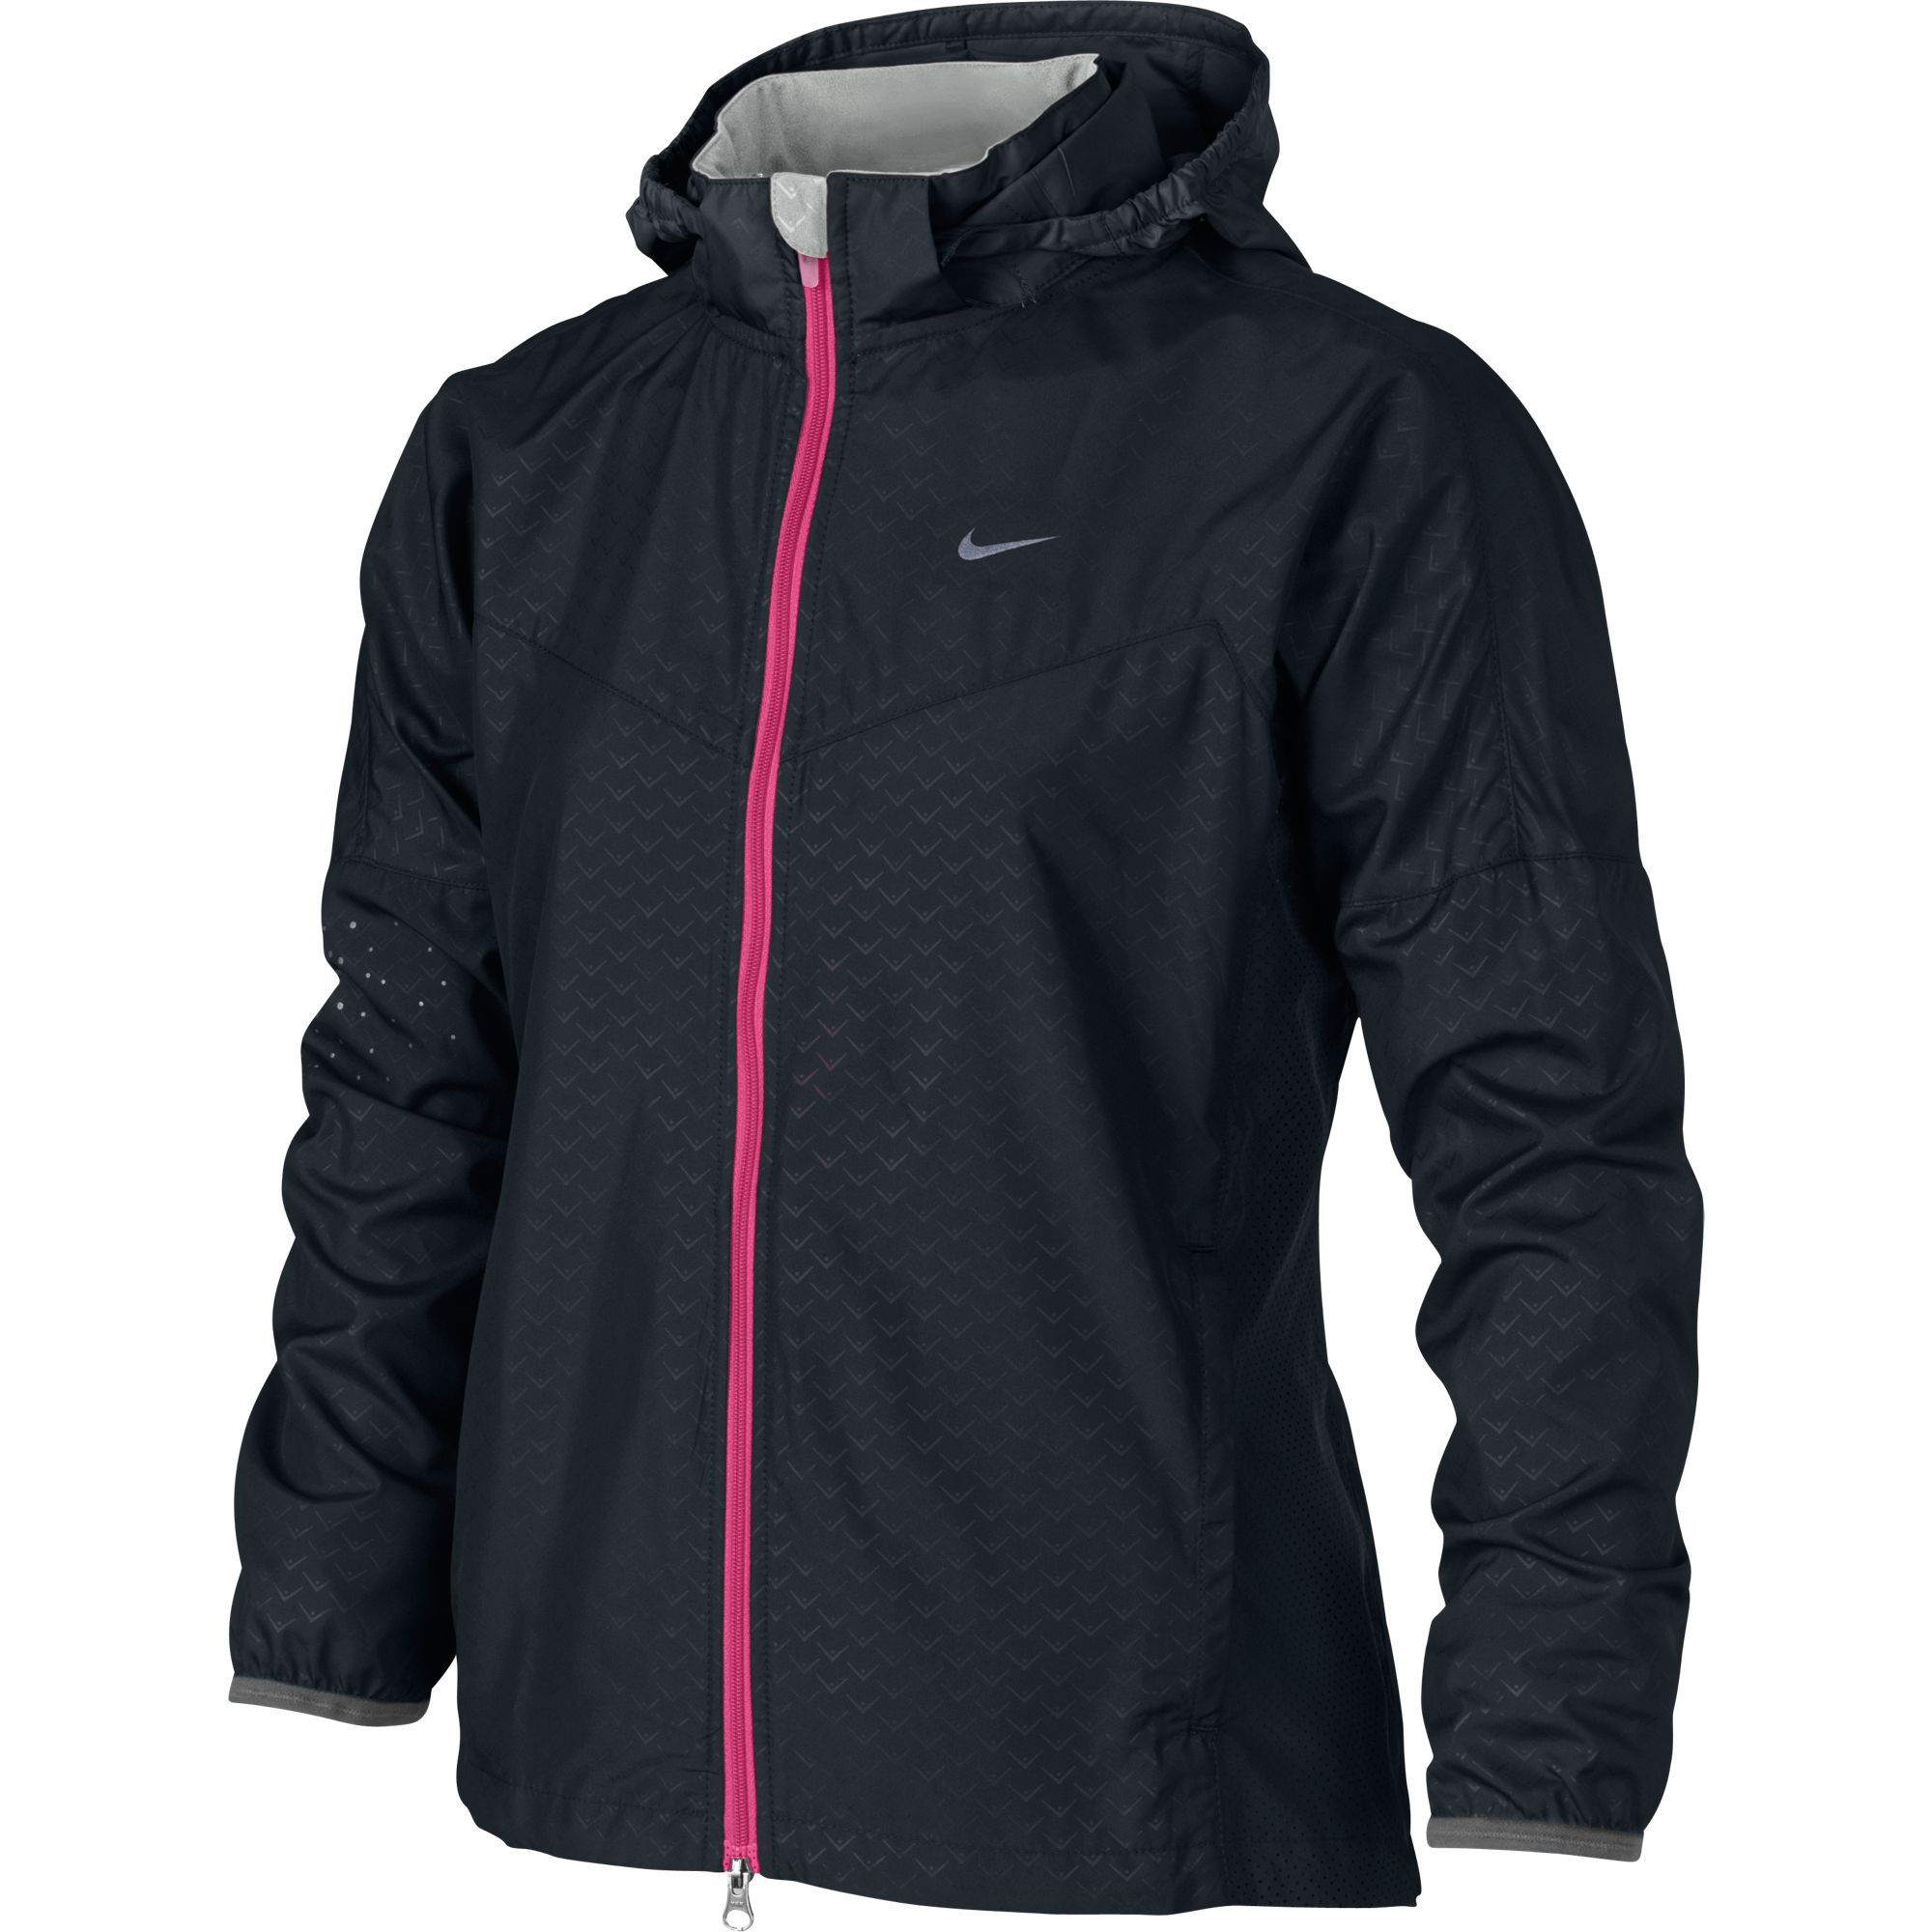 nike outfits for girls. nike girls vapor jacket - ho13 outfits for